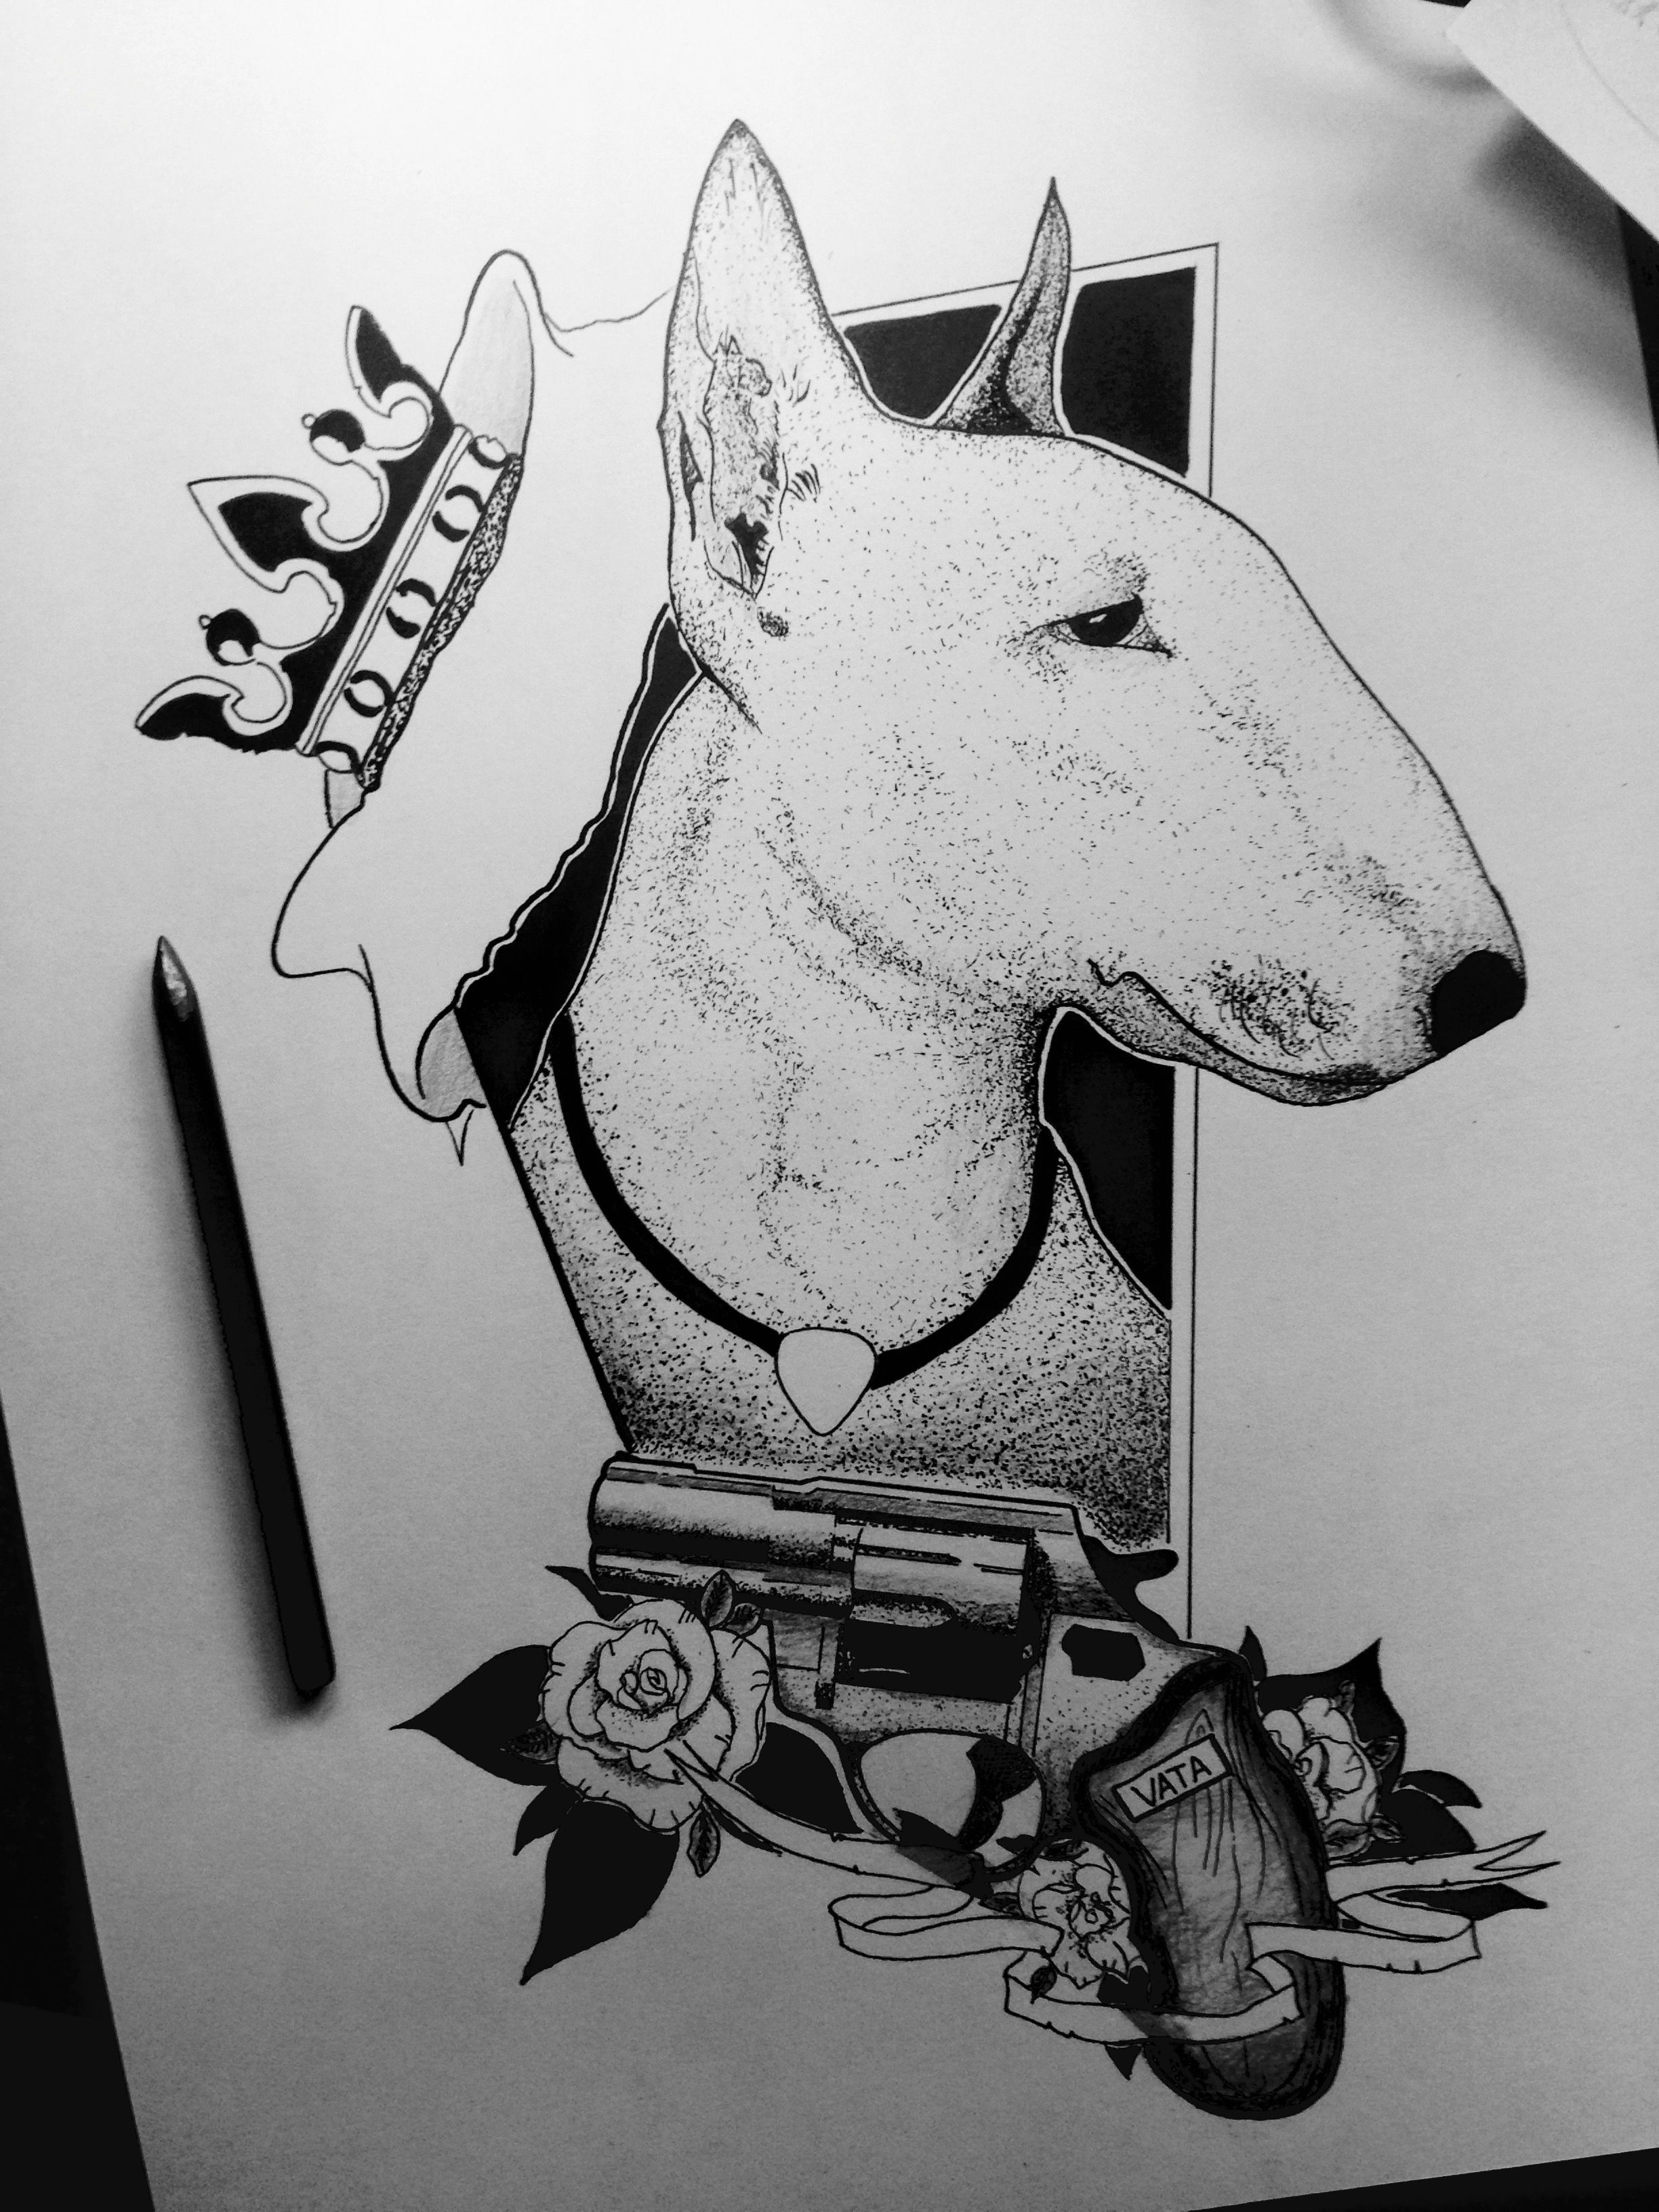 bullterrier blackandwhite dotwork gun rose king evil graphic ink sketch about black. Black Bedroom Furniture Sets. Home Design Ideas